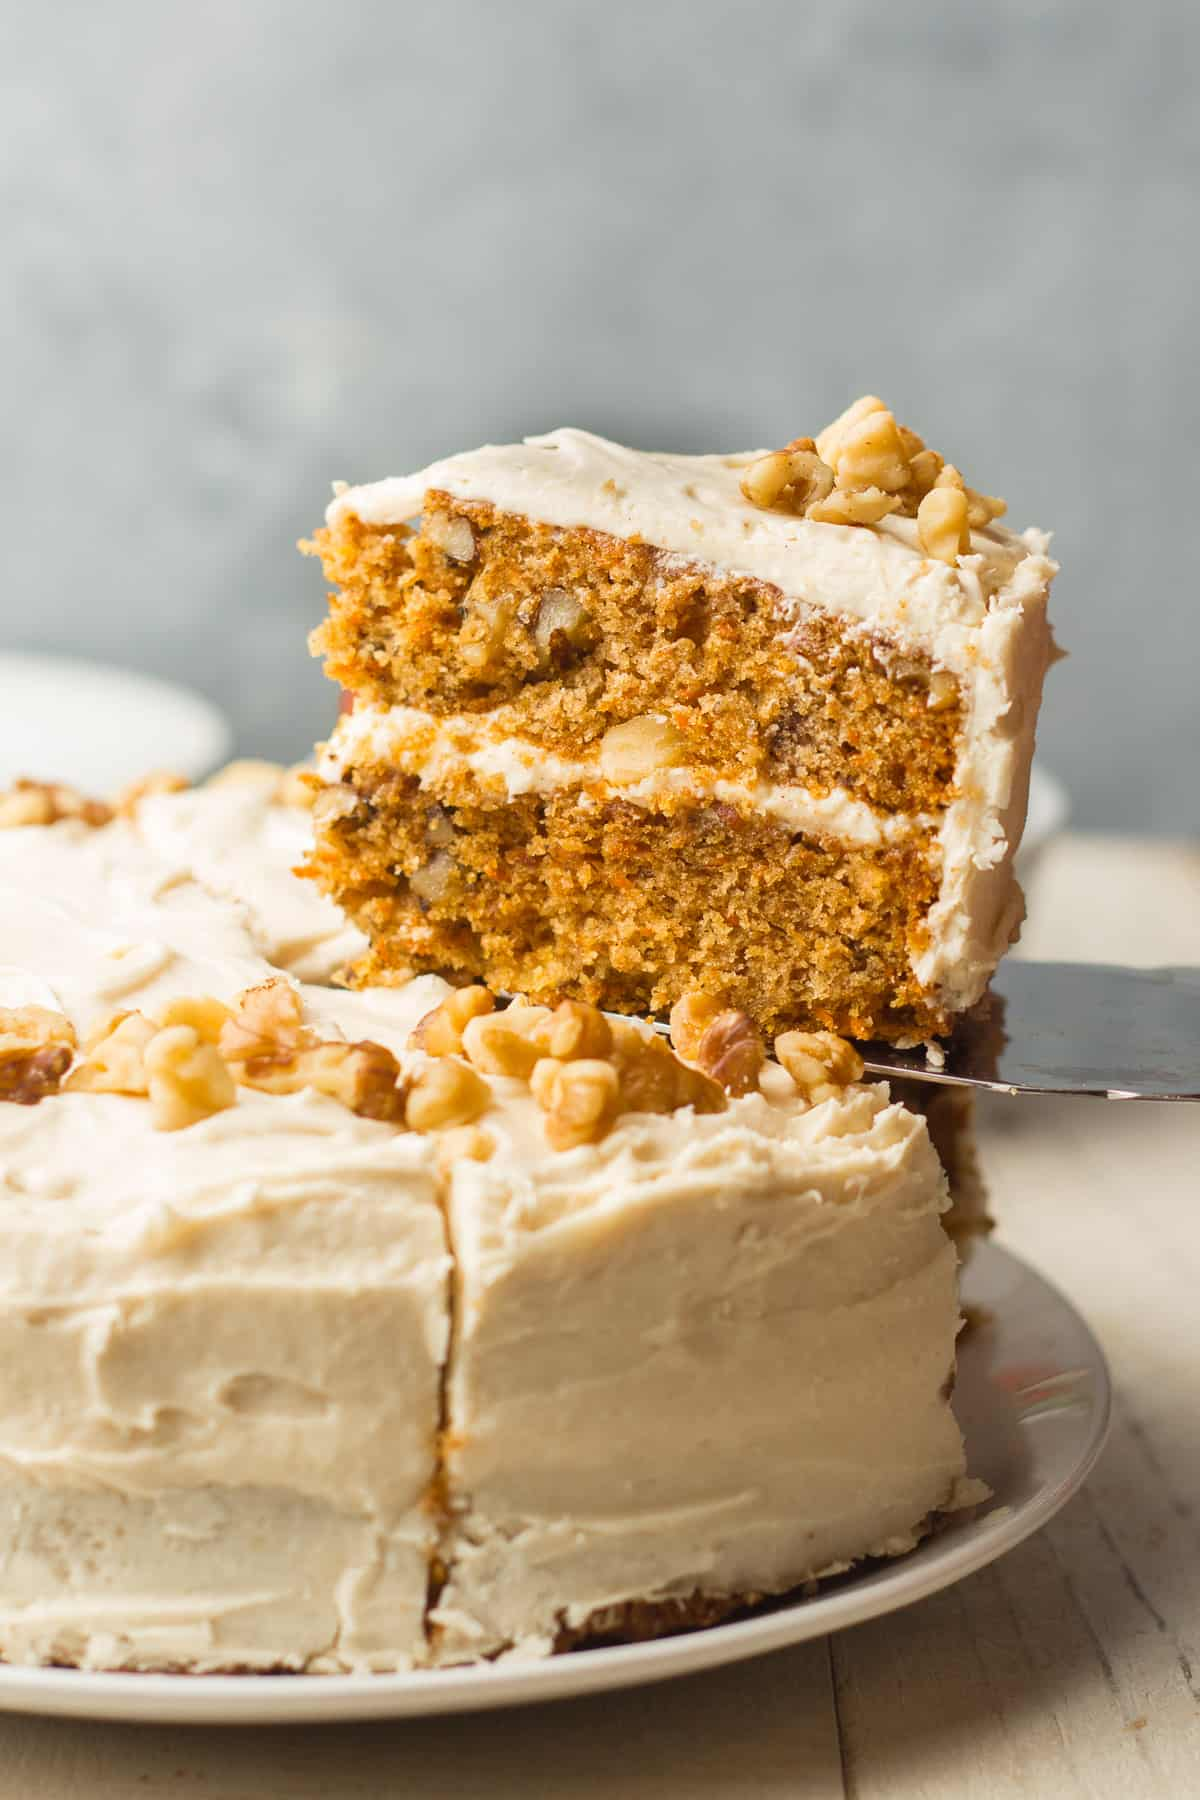 Slice of Vegan Carrot Cake Being Lifted with a Cake Server